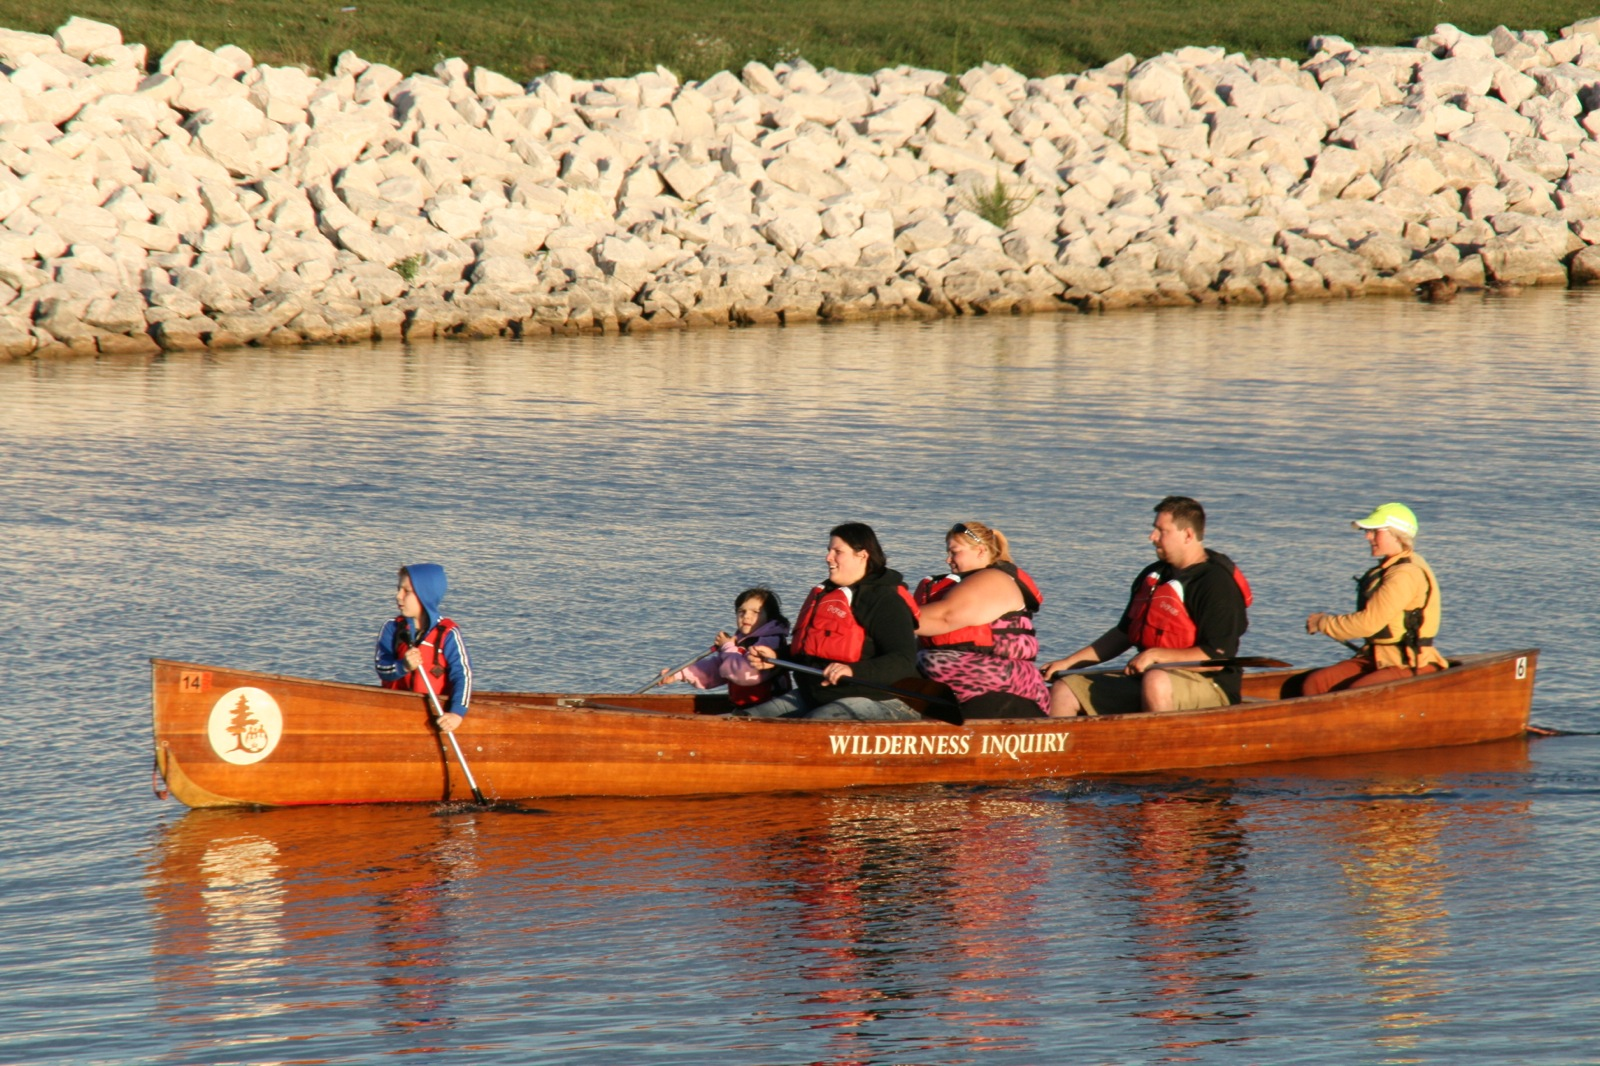 group of 7 paddle their canoe along the water near a rocky shore